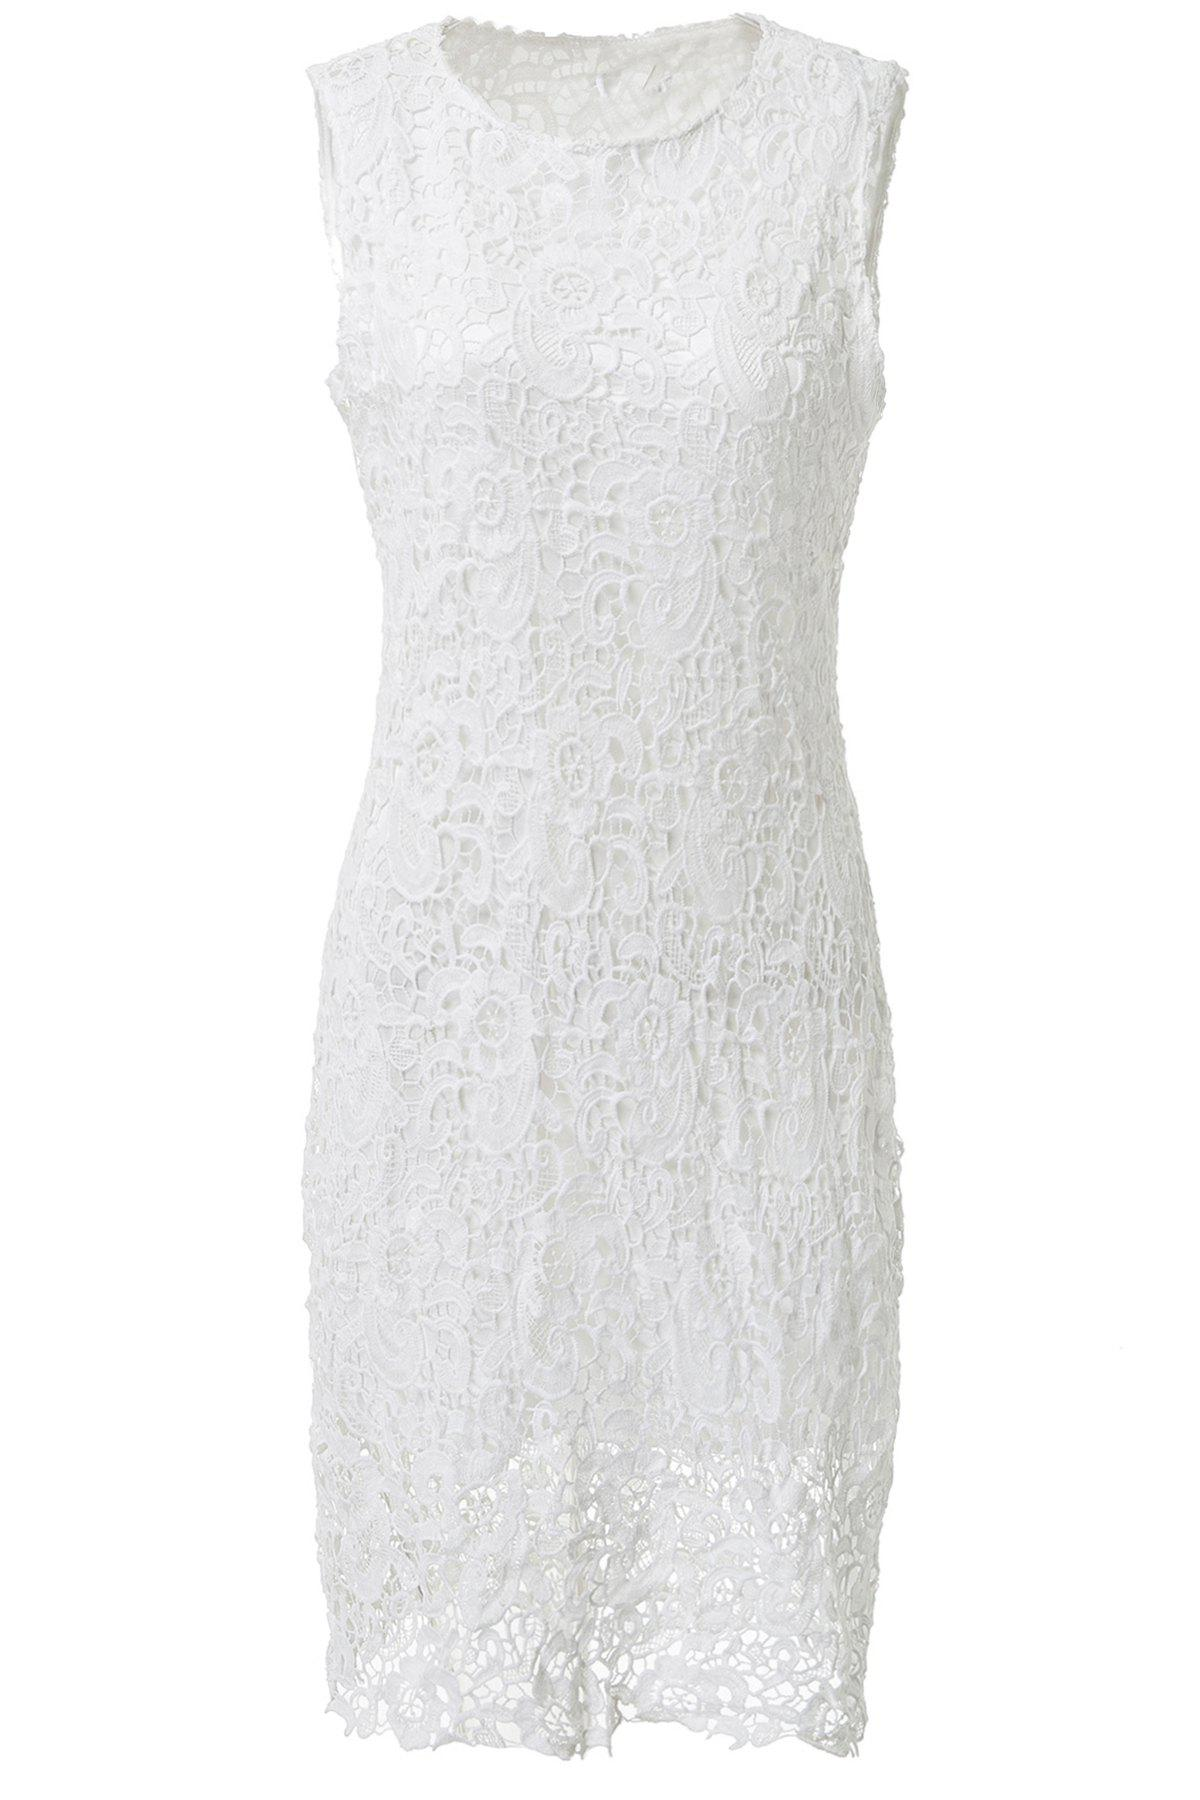 Sexy Round Neck Sleeveless Cut Out Solid Color Women's Lace Dress - WHITE L